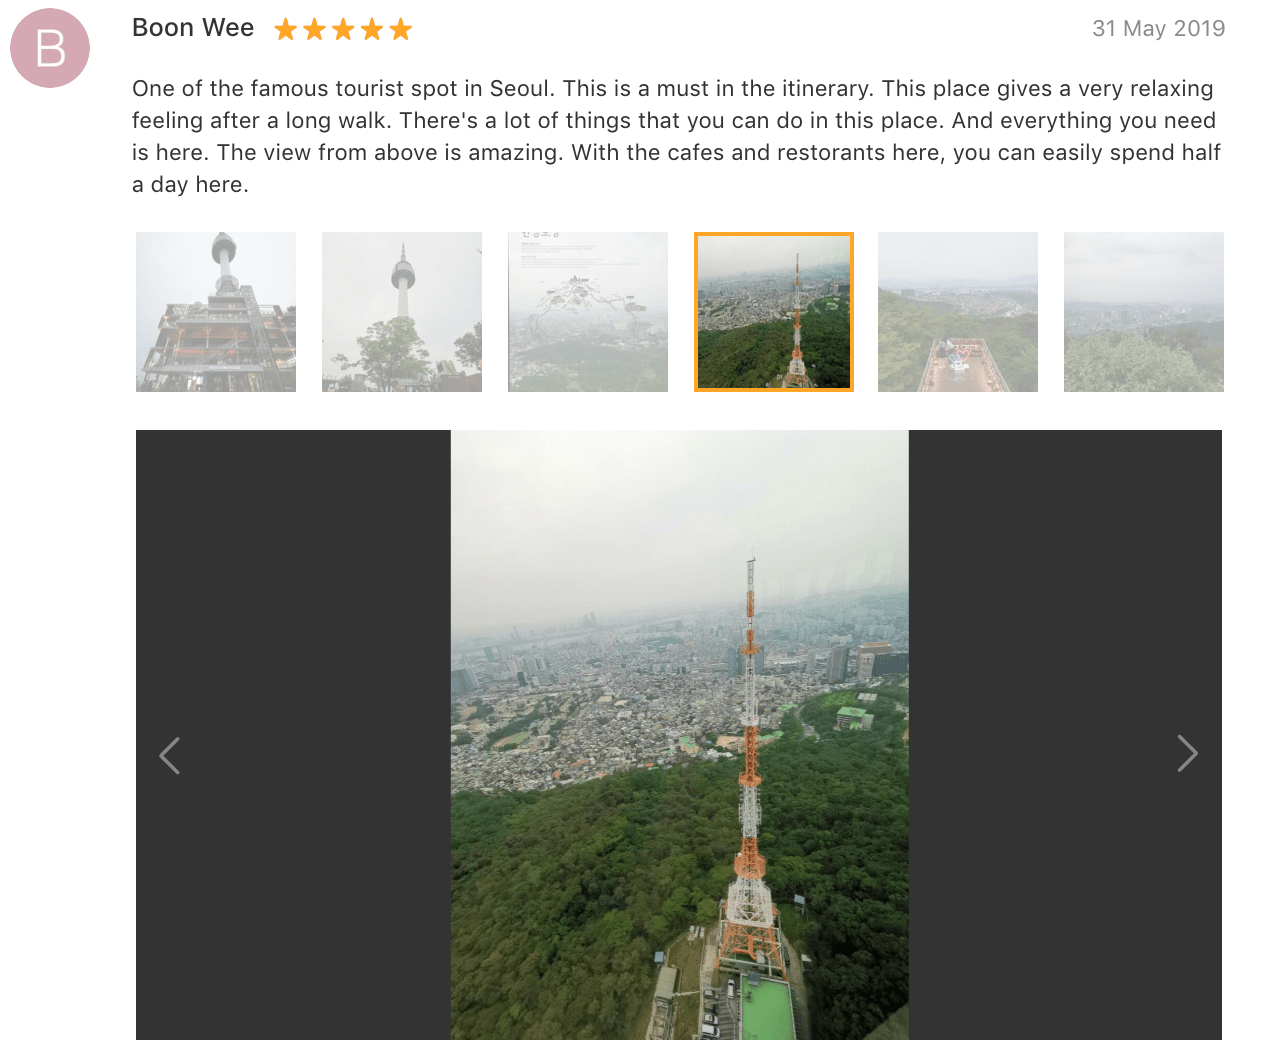 'One of the famous tourist [spots] in Seoul. This is a must in the itinerary… There's a lot of things that you can do in this place… The view from above is amazing. With the cafes…you can easily spend half a day here.' - N Seoul Tower Ticket Review: Klook